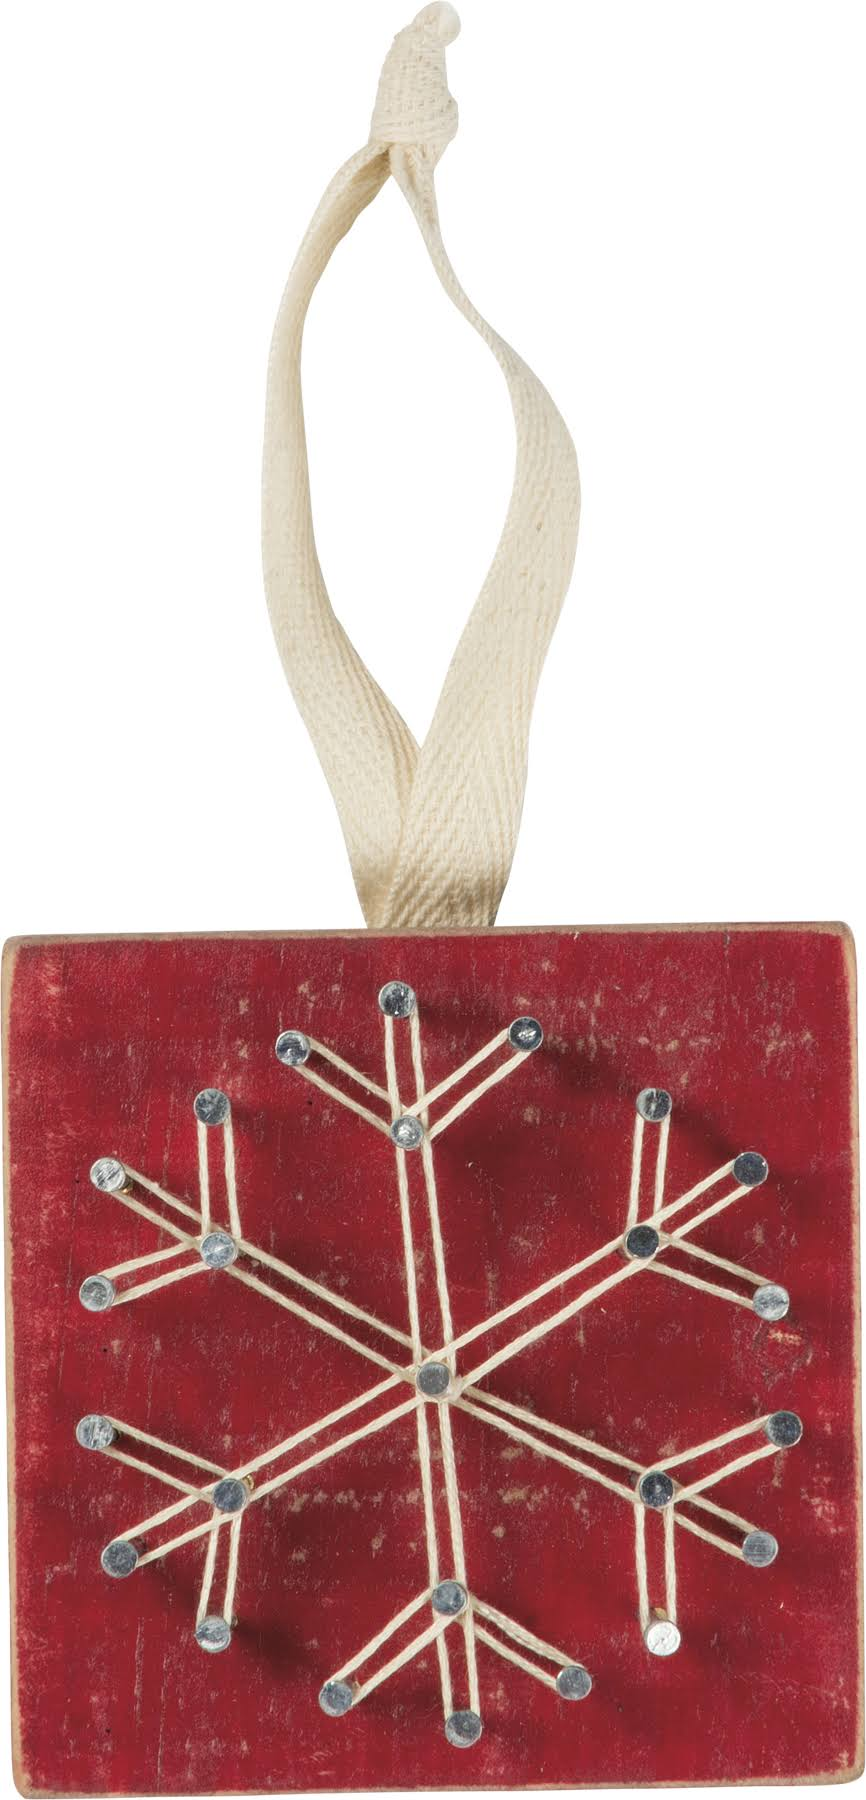 Primitives by Kathy Red Snowflake String Art Ornament One-Size